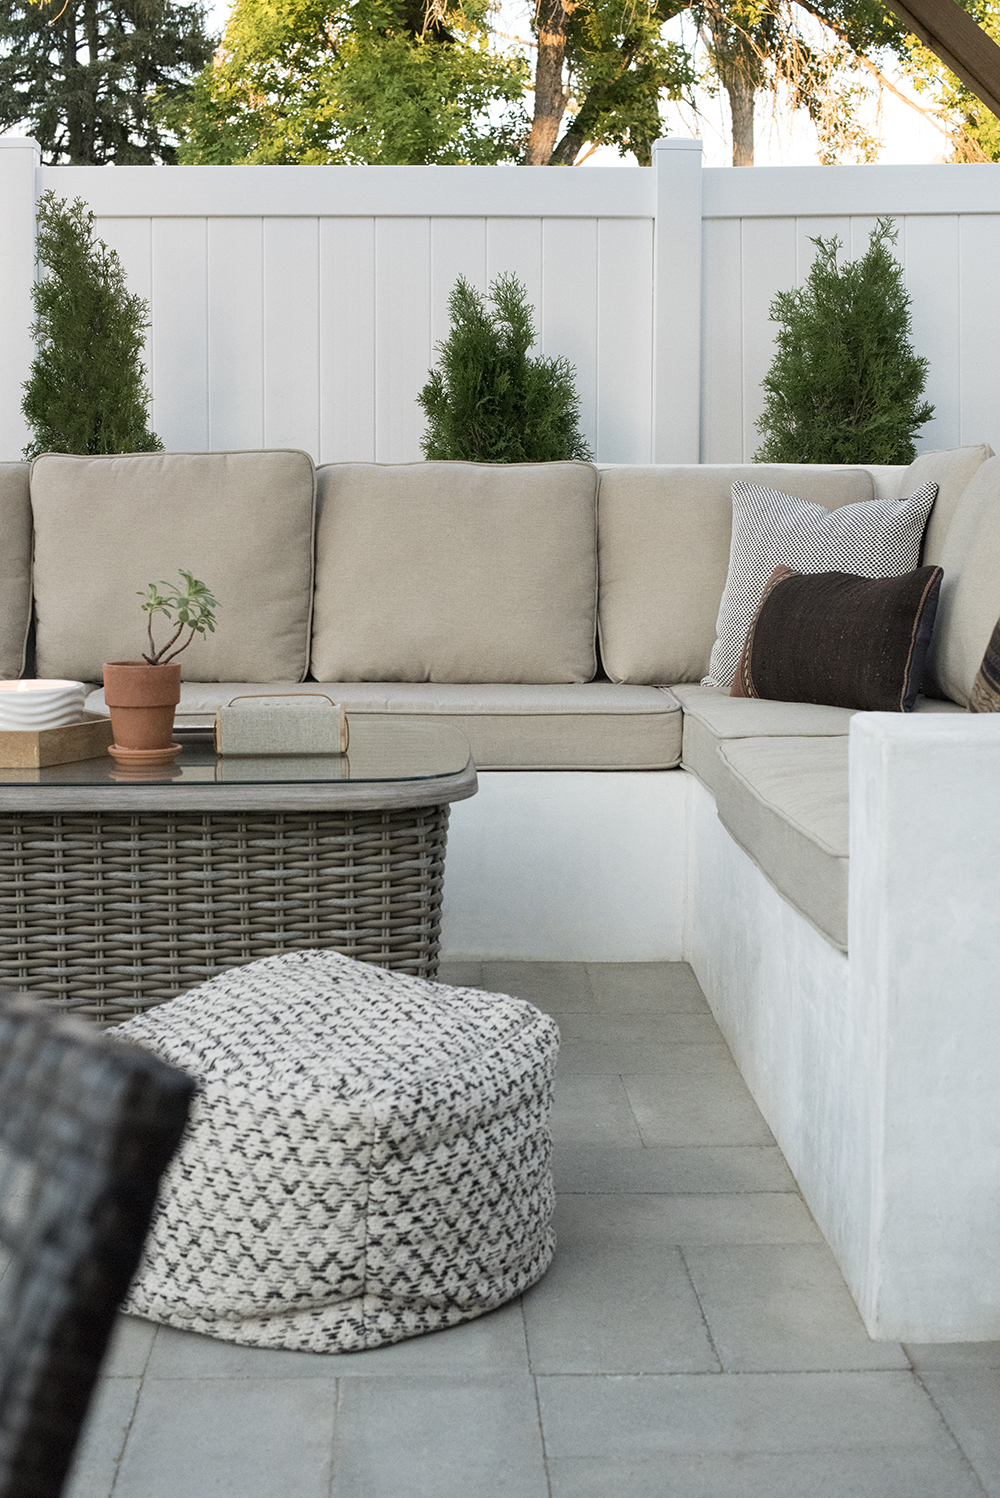 Custom Outdoor Seating DIY